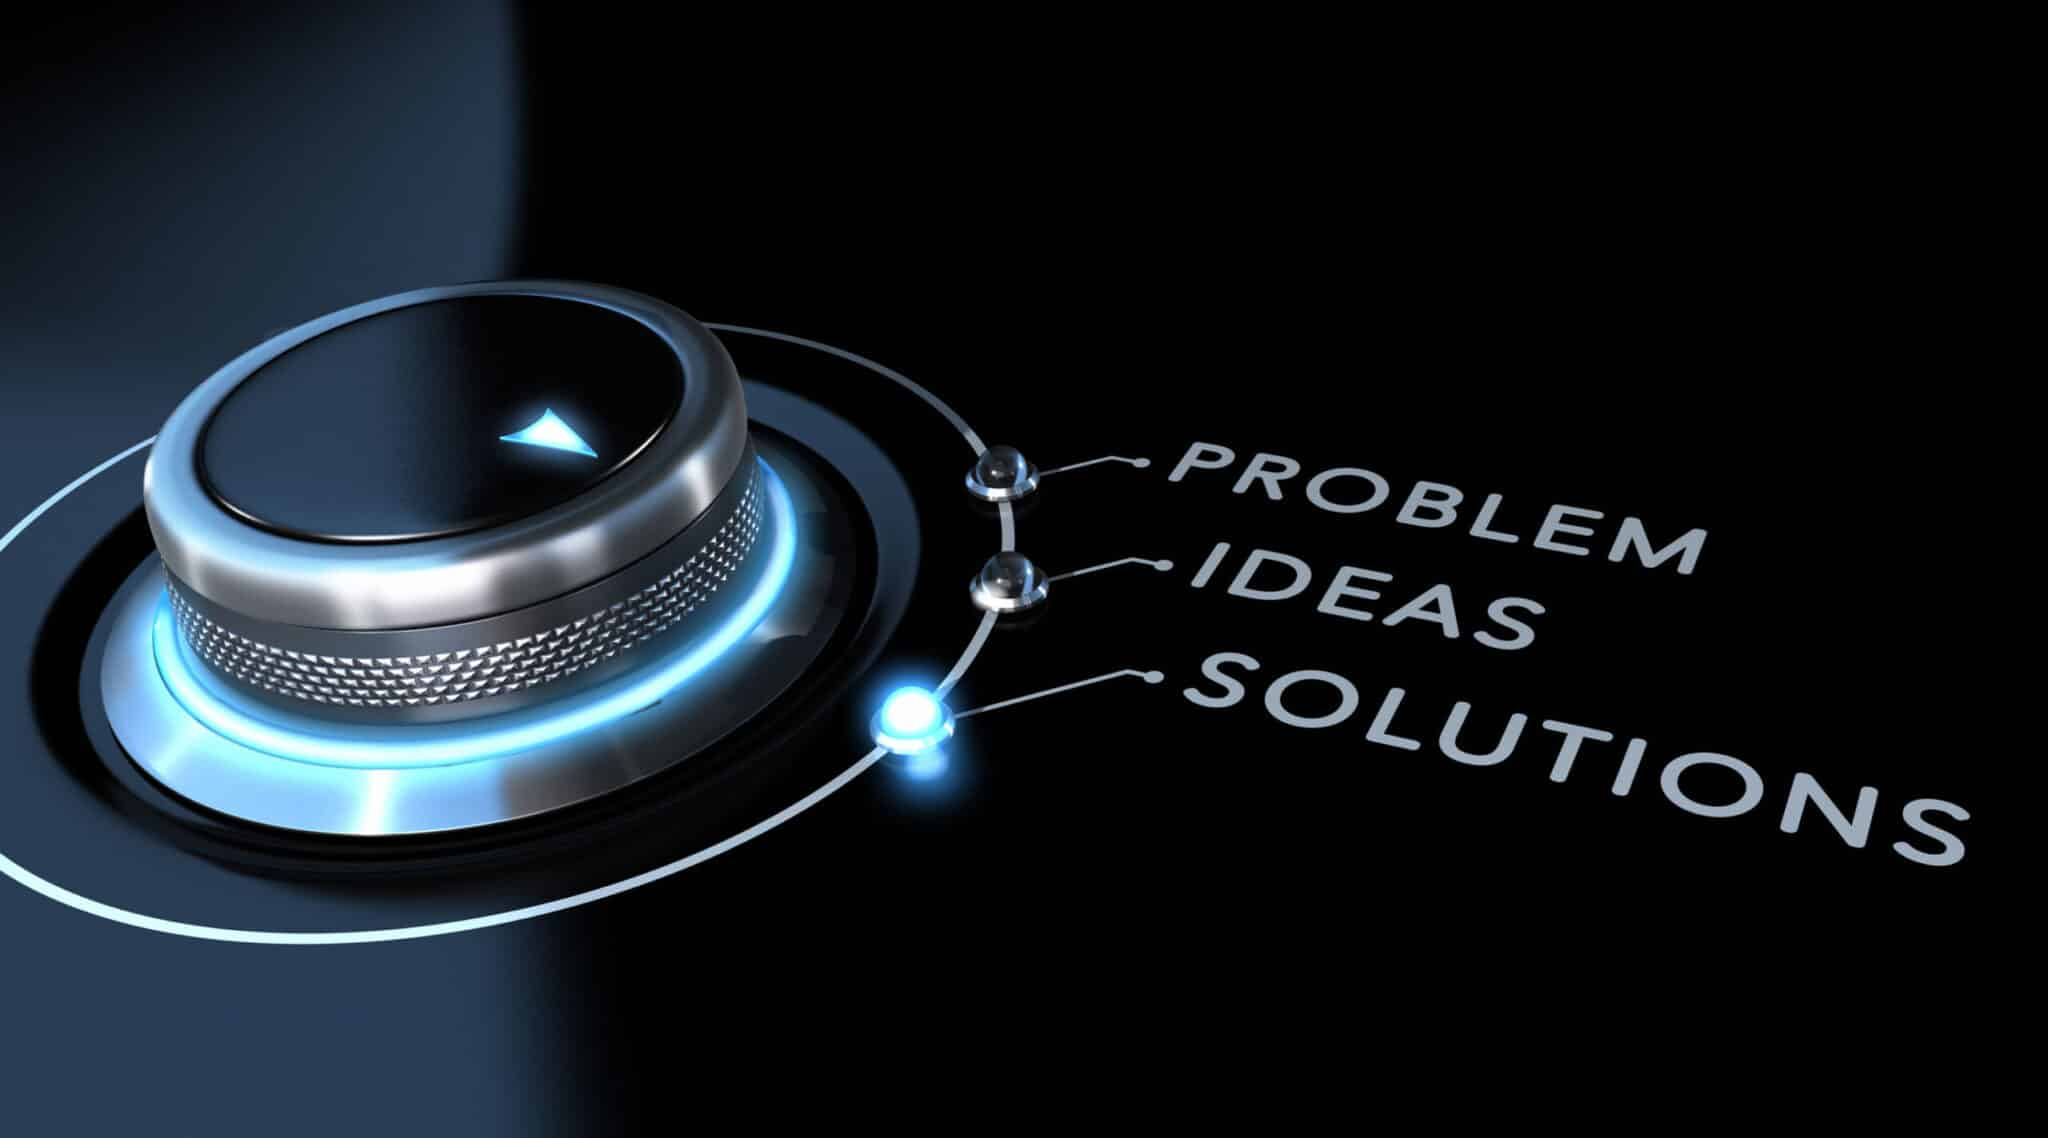 Problems Ideas Solutions